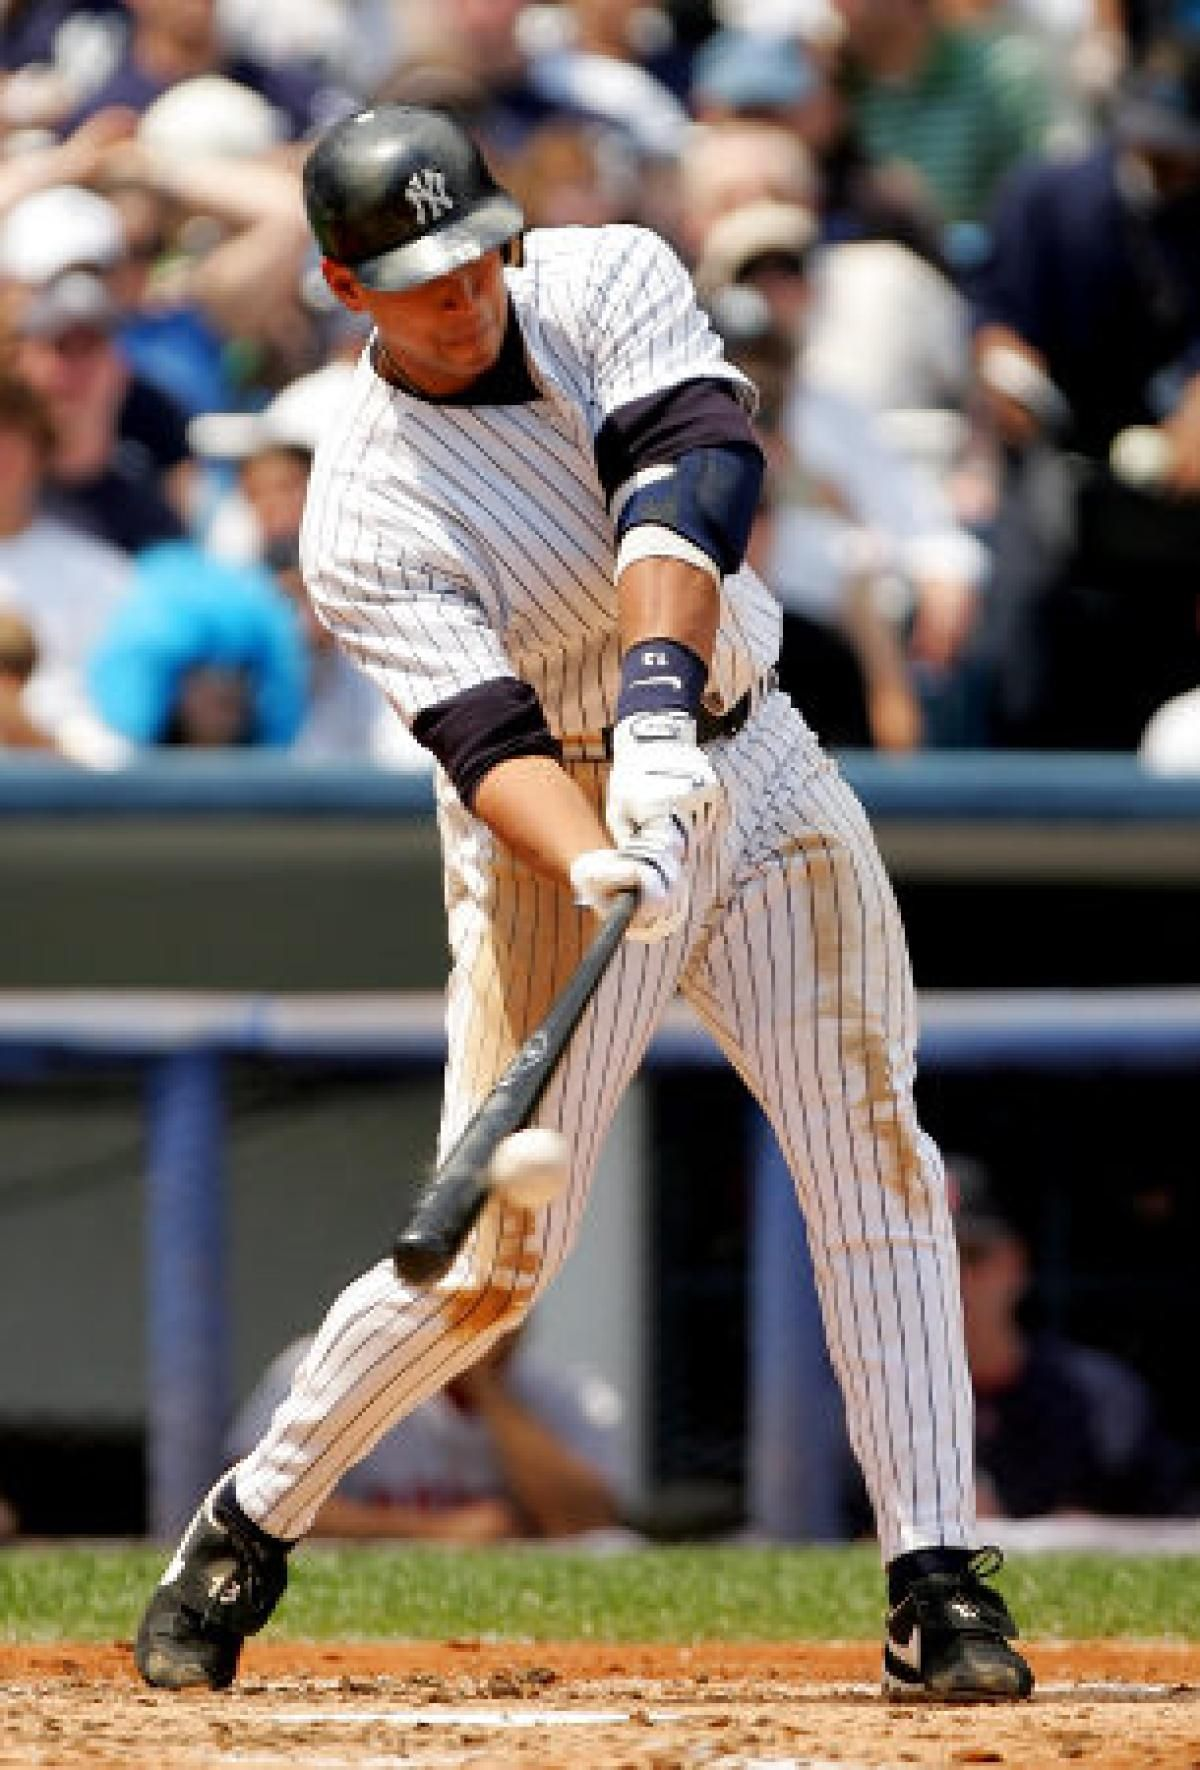 The Alex Rodriguez Story Alex The Great S Yankee Career Slide 12 Alex Rodriguez Alex The Great Yankees